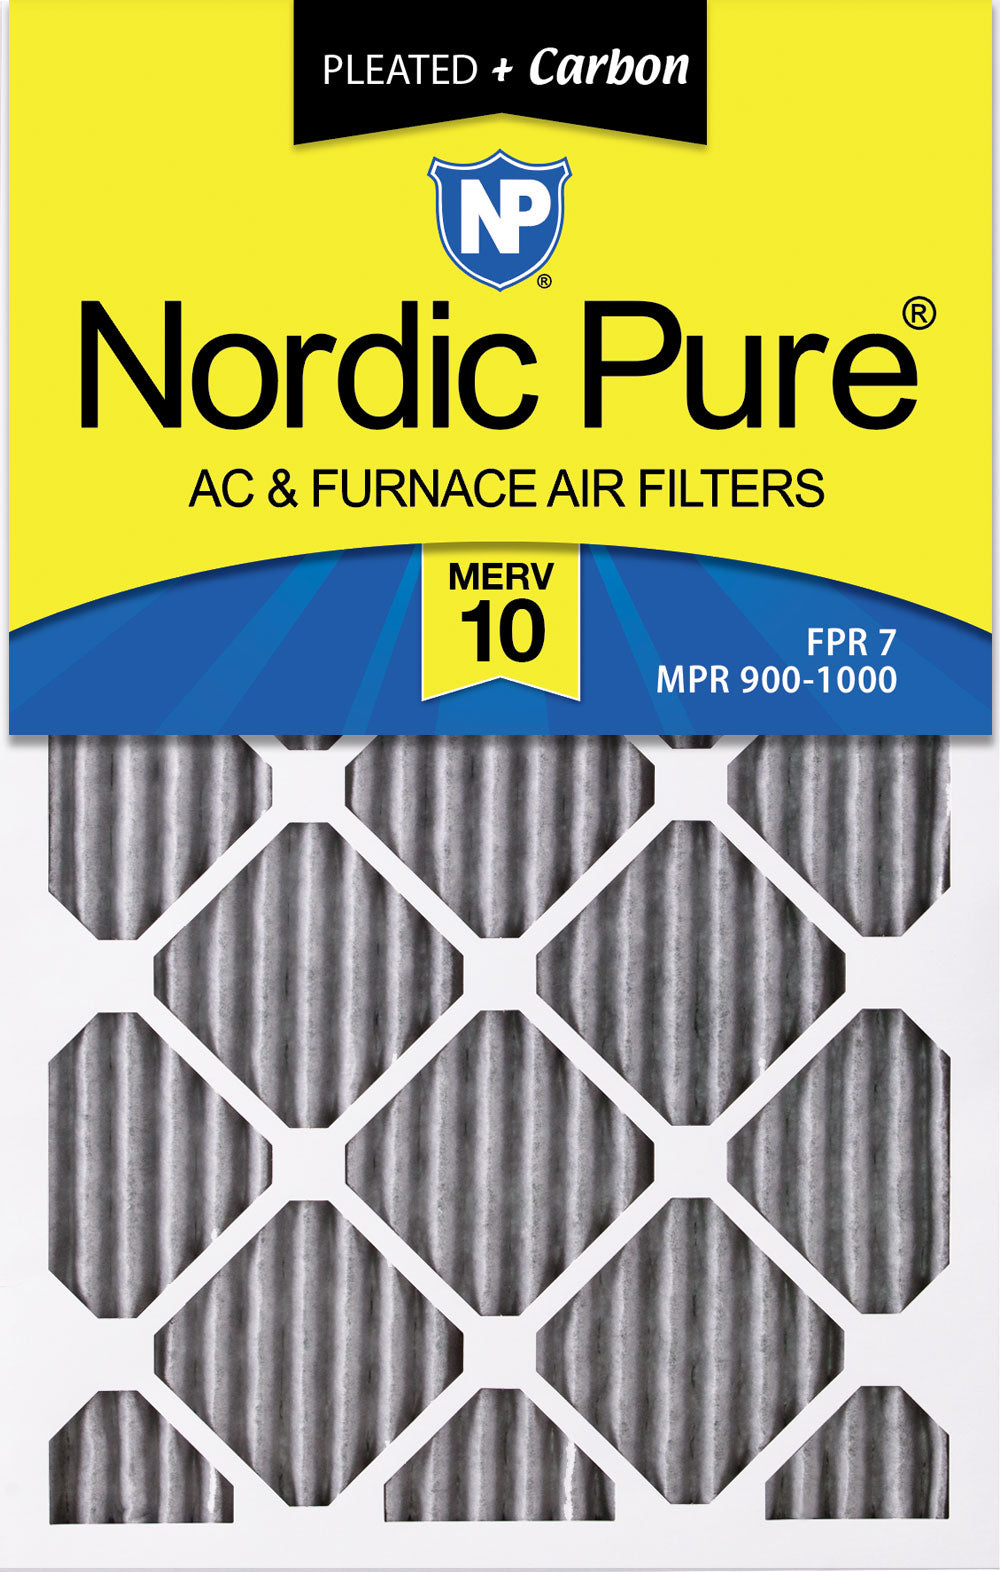 12x36x1 Furnace Air Filters MERV 10 Pleated Plus Carbon 6 Pack